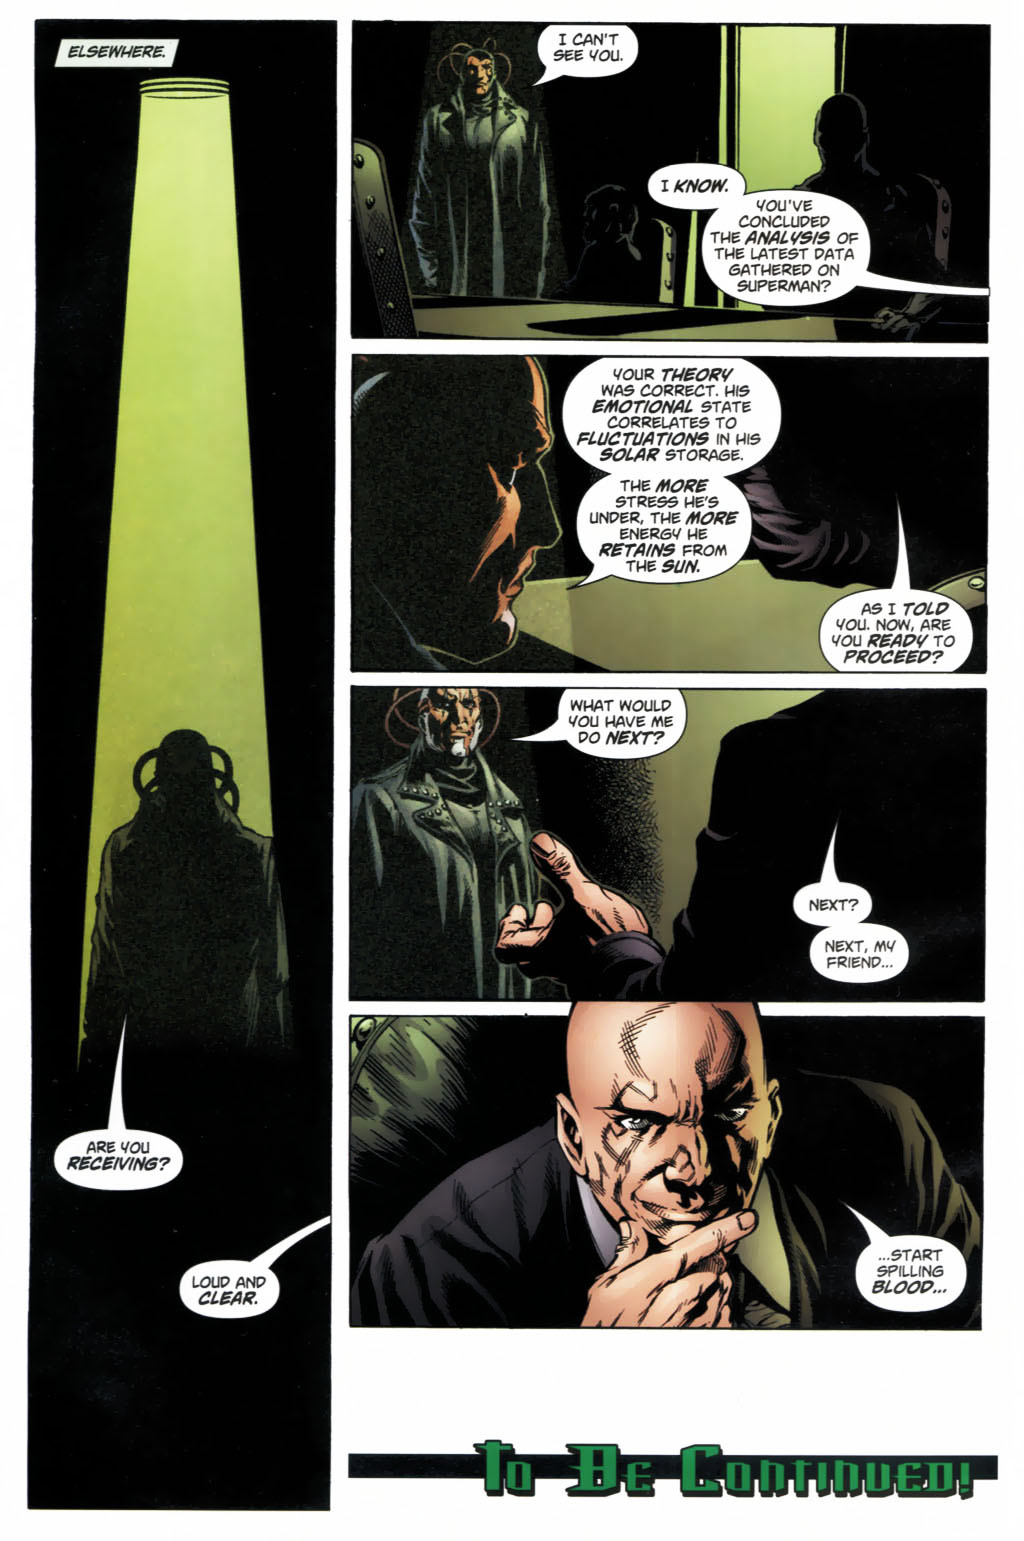 A nice explanation from Lex Luthor and Ruin on how his powers work.